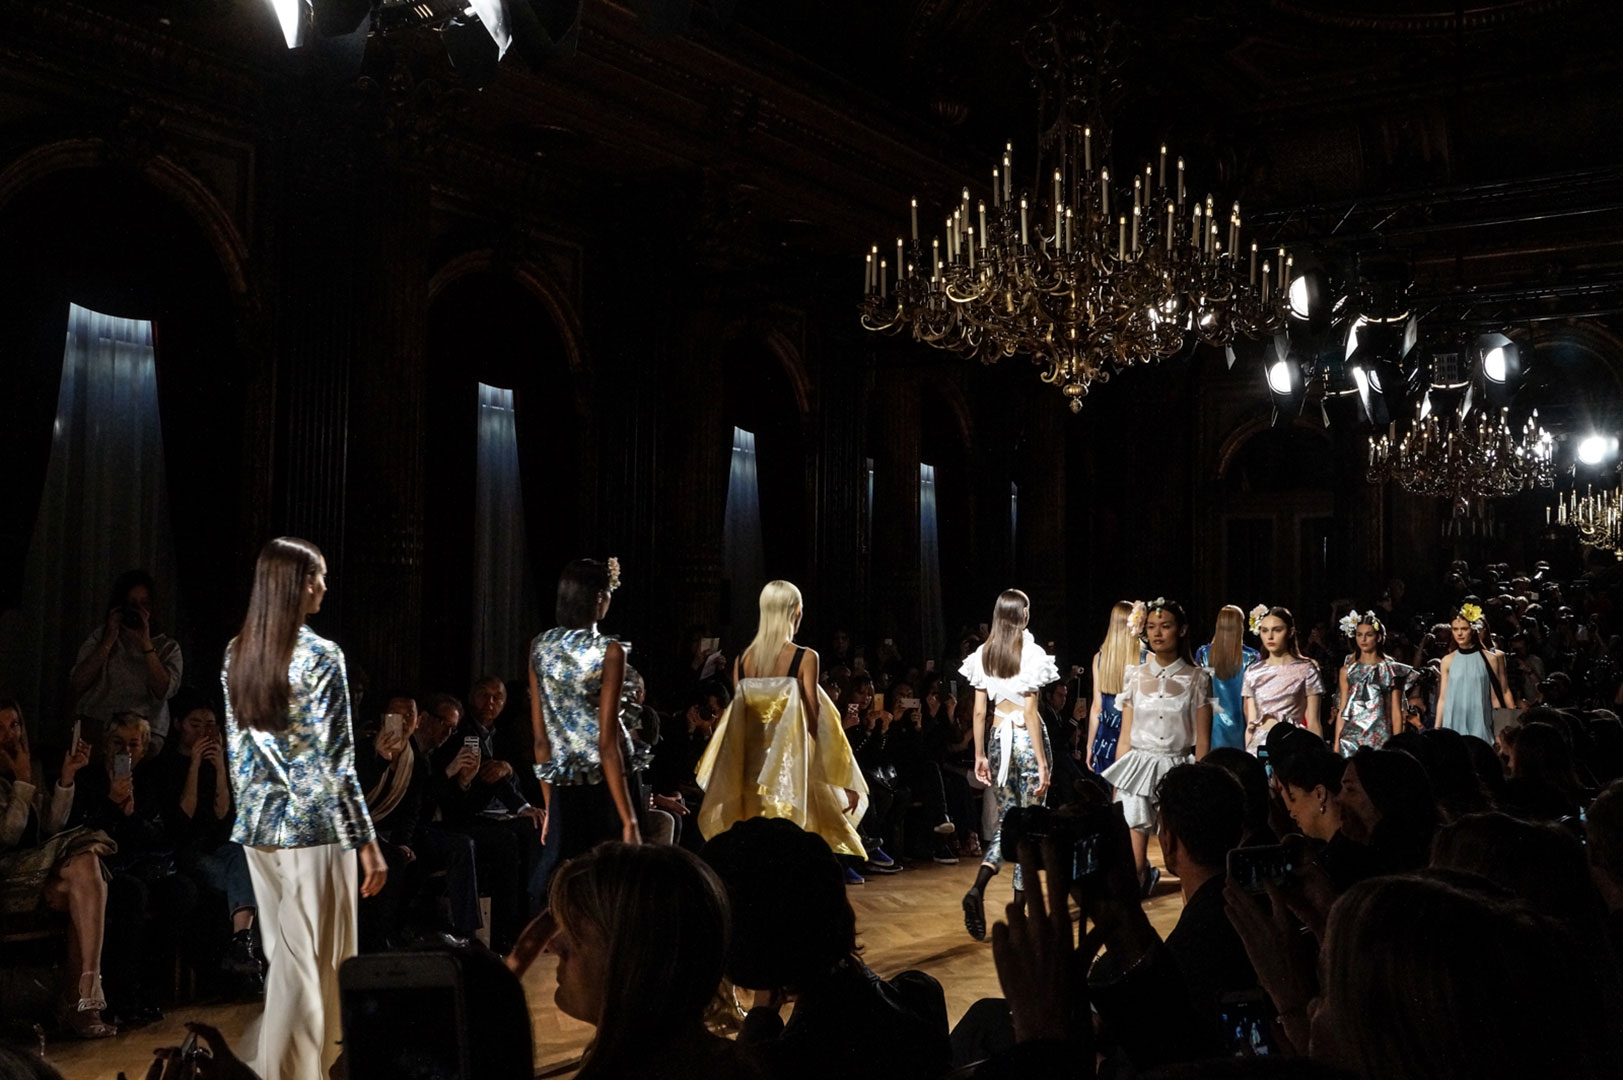 my-paris-fashion-week-diary-paris-by-polina-paraskevopoulou-all-rights-reserved-41